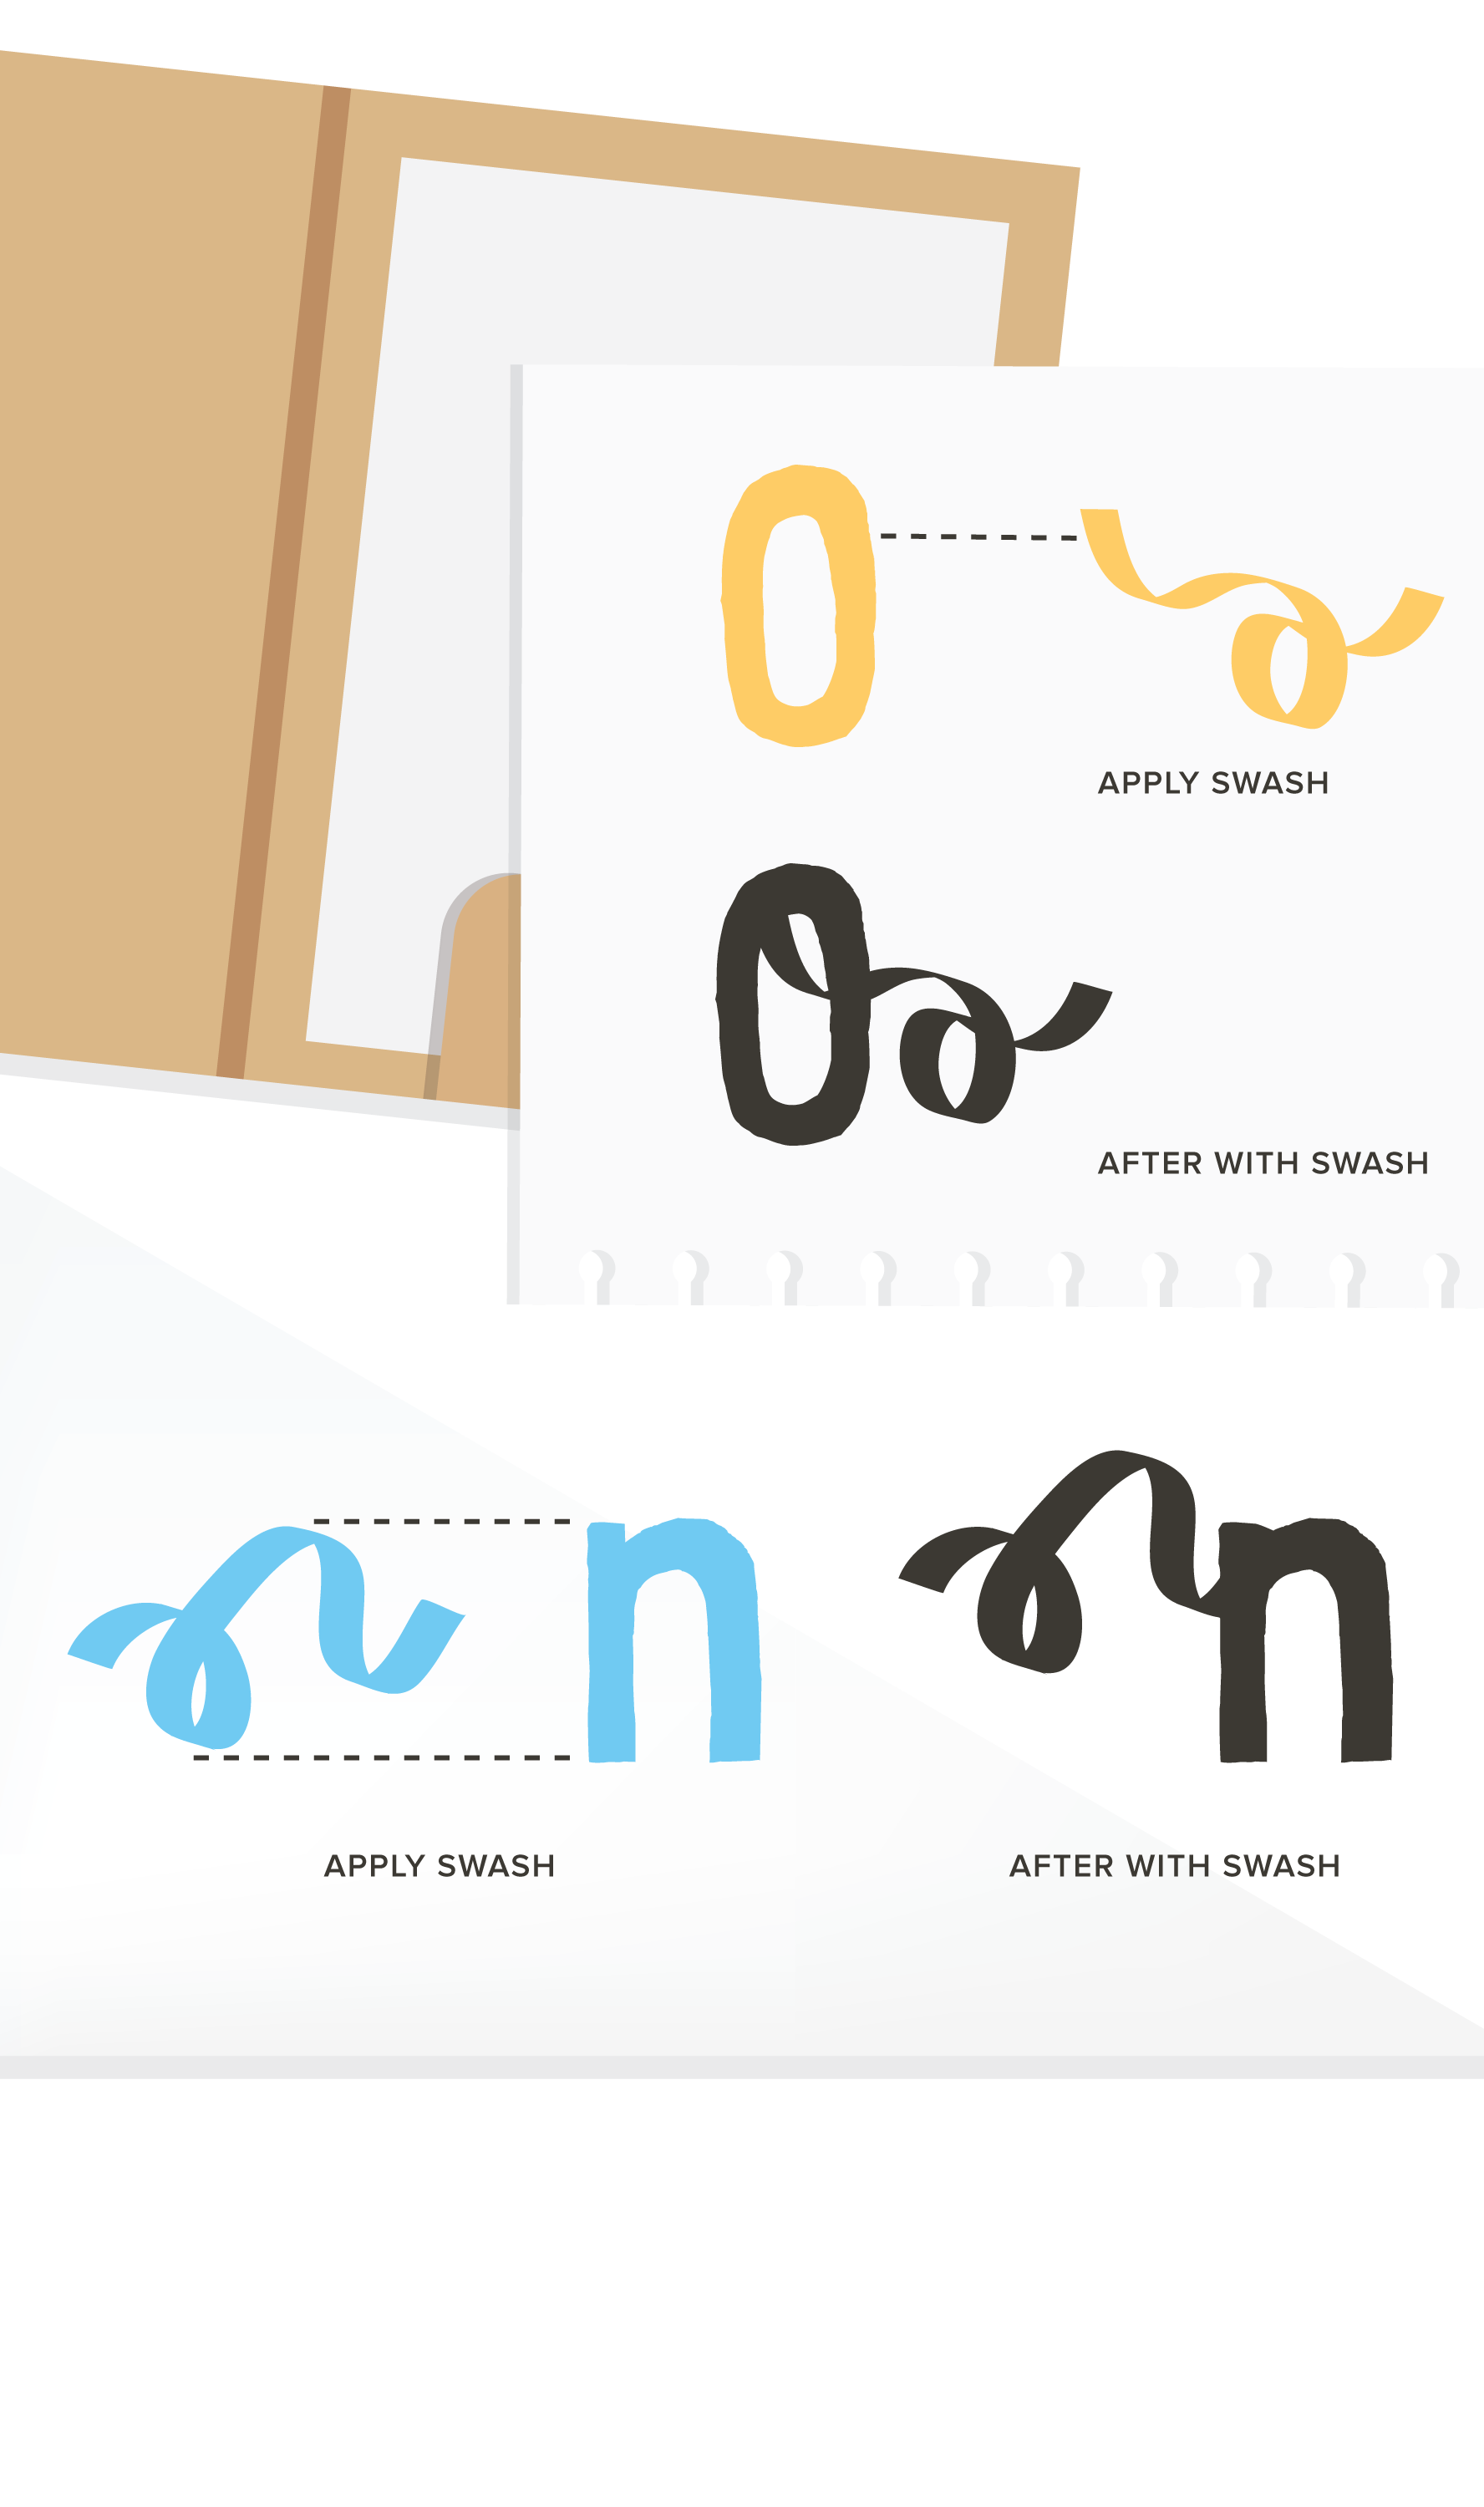 Flourishes clipart swash. The collection on behance